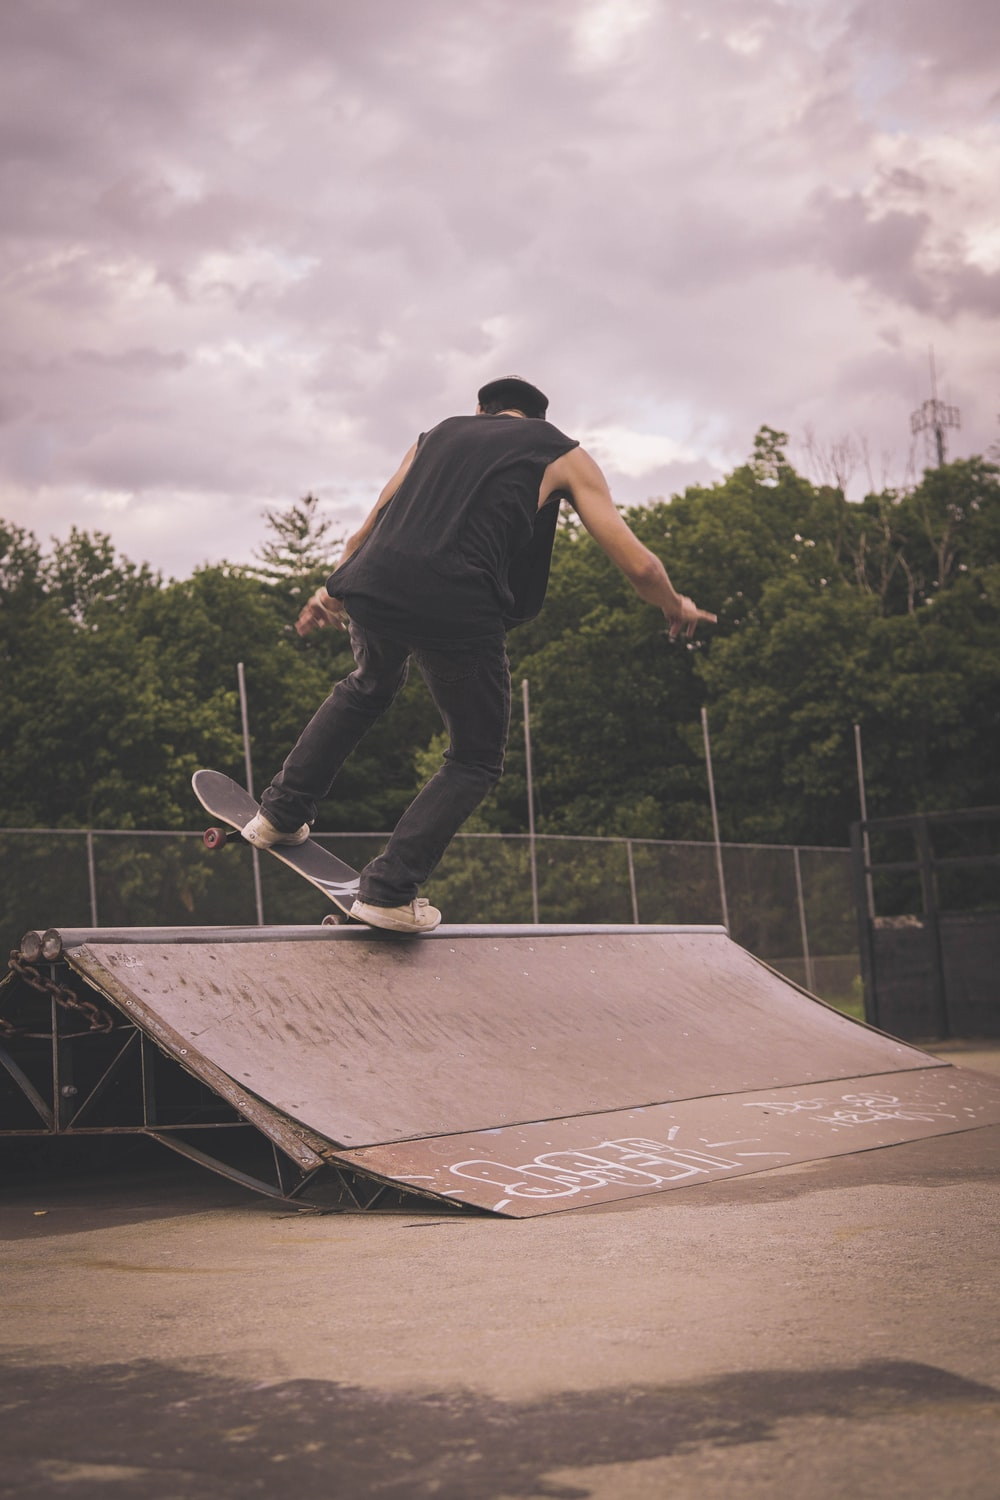 man in black t-shirt and blue denim jeans playing skateboard during daytime